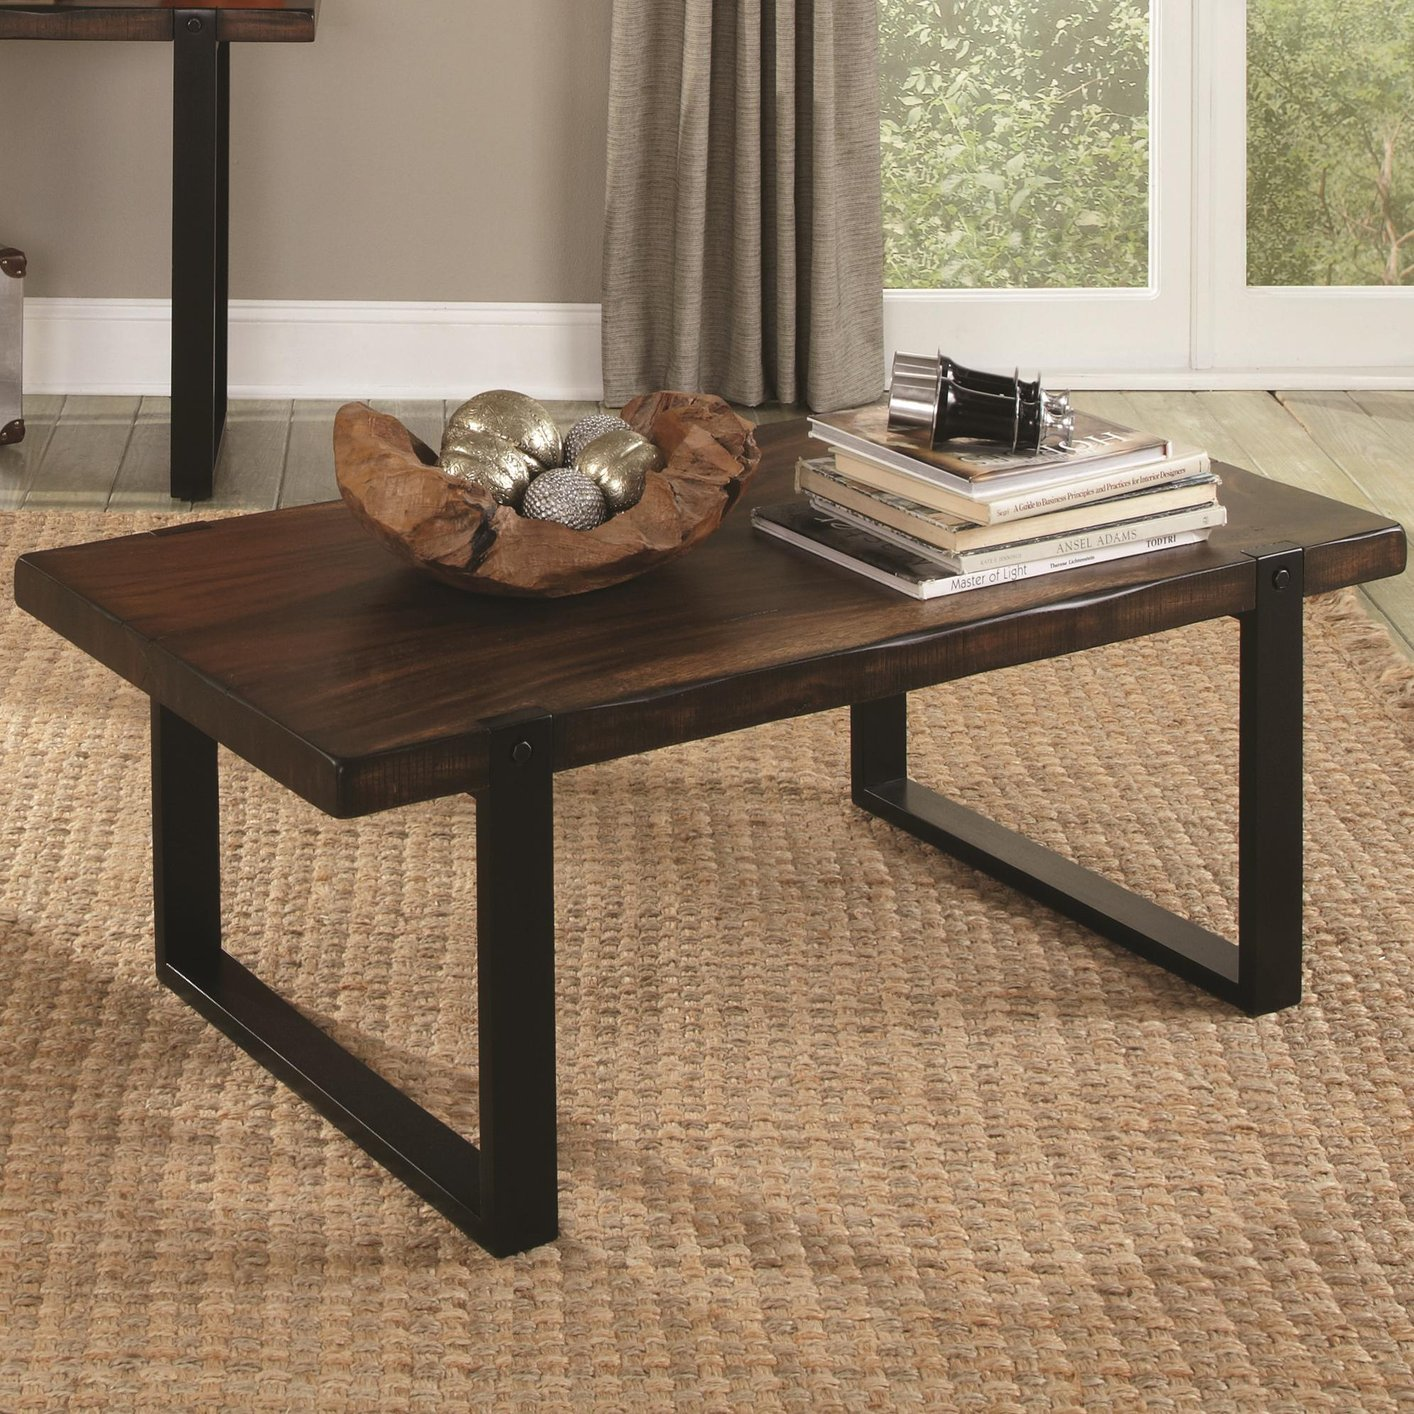 Coaster 703428 Black Wood Coffee Table Steal A Sofa